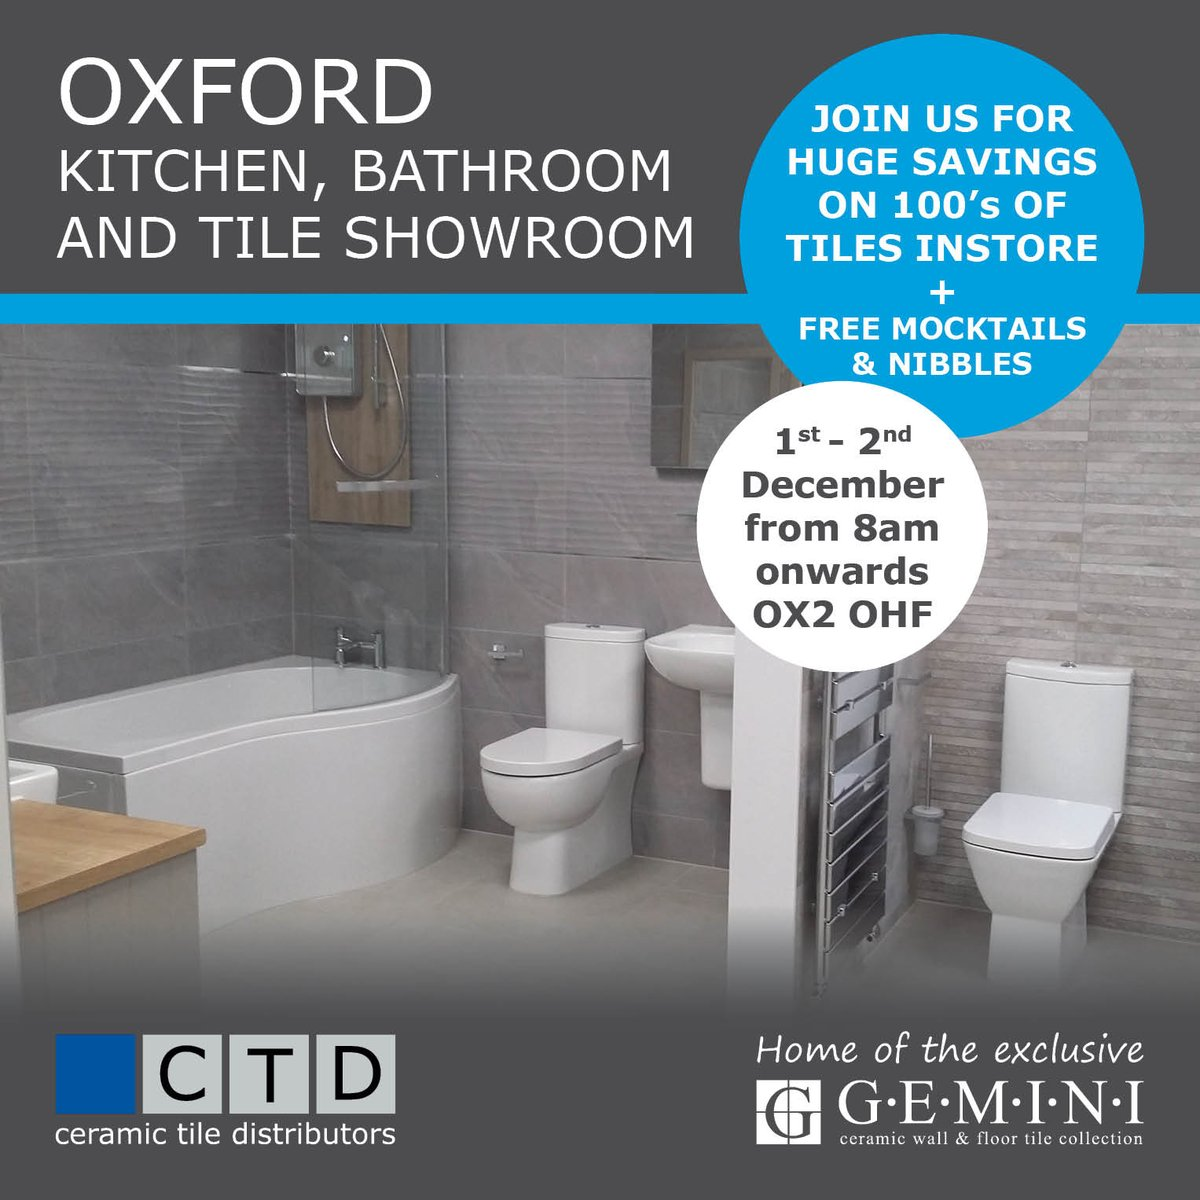 Ctd tiles ctdtiles twitter join us for huge savings on 100s of tiles and special offers on jewson kitchens and bathroom ranges dailygadgetfo Images